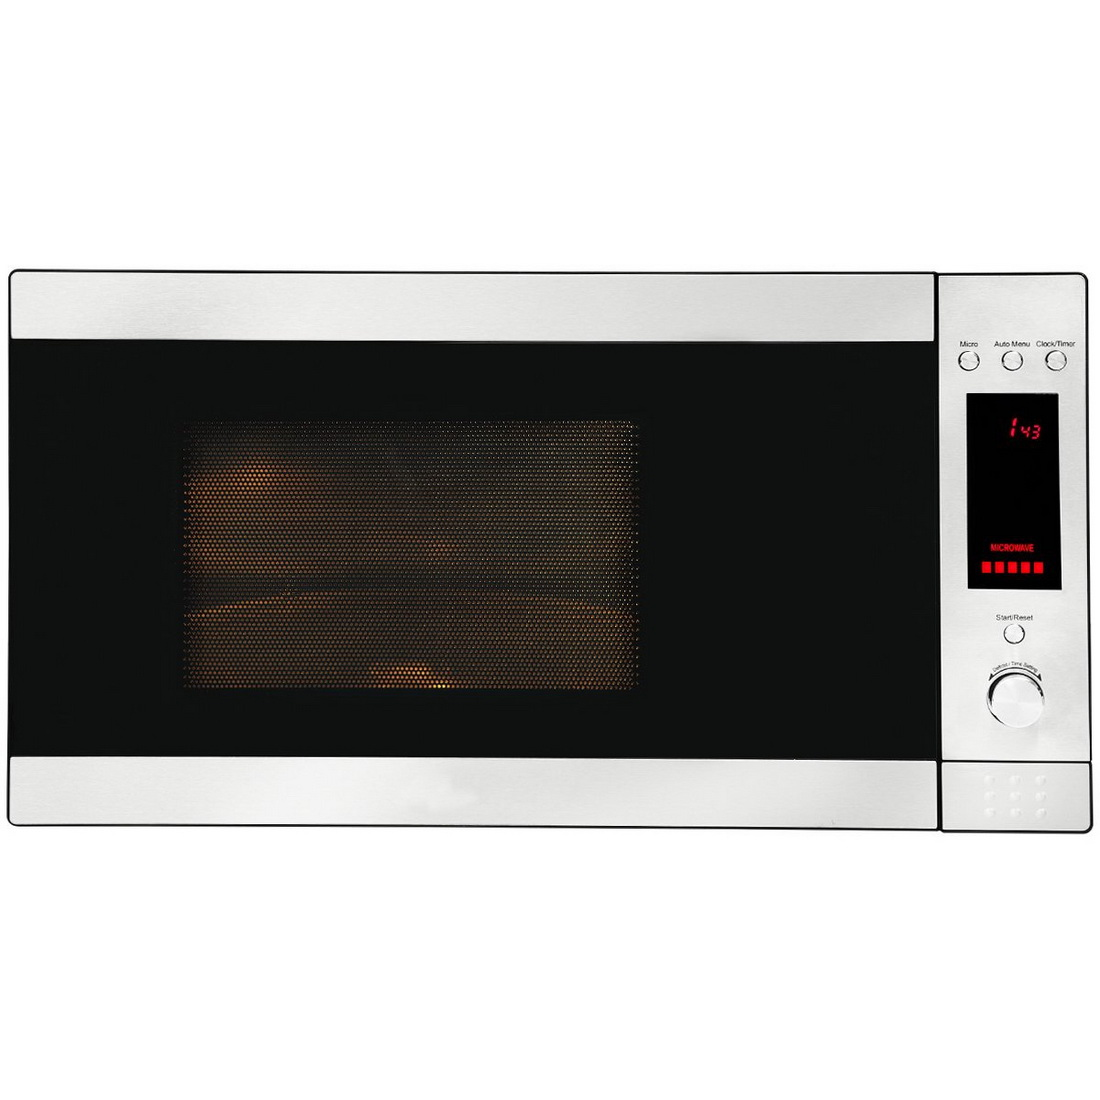 6 Cook Function Microwave Oven 31L Stainless Steel AMO31X